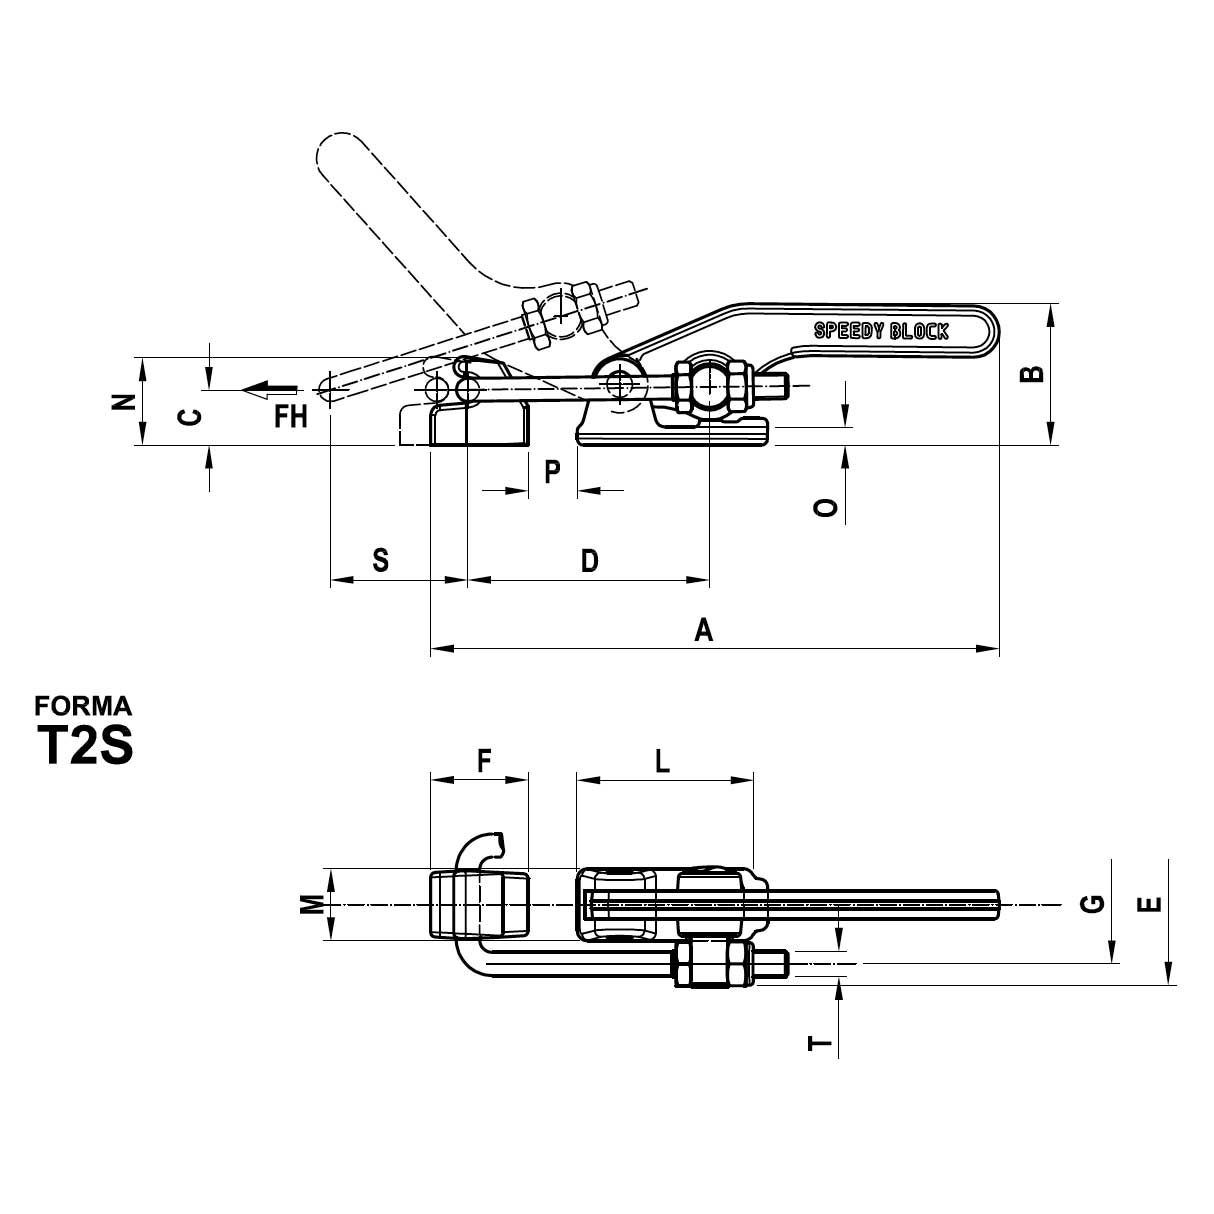 Stainless Steel Series Toggle Clamp Form T2s Heavy Weldable Resistance Welding Block Diagram View Technical Drawing